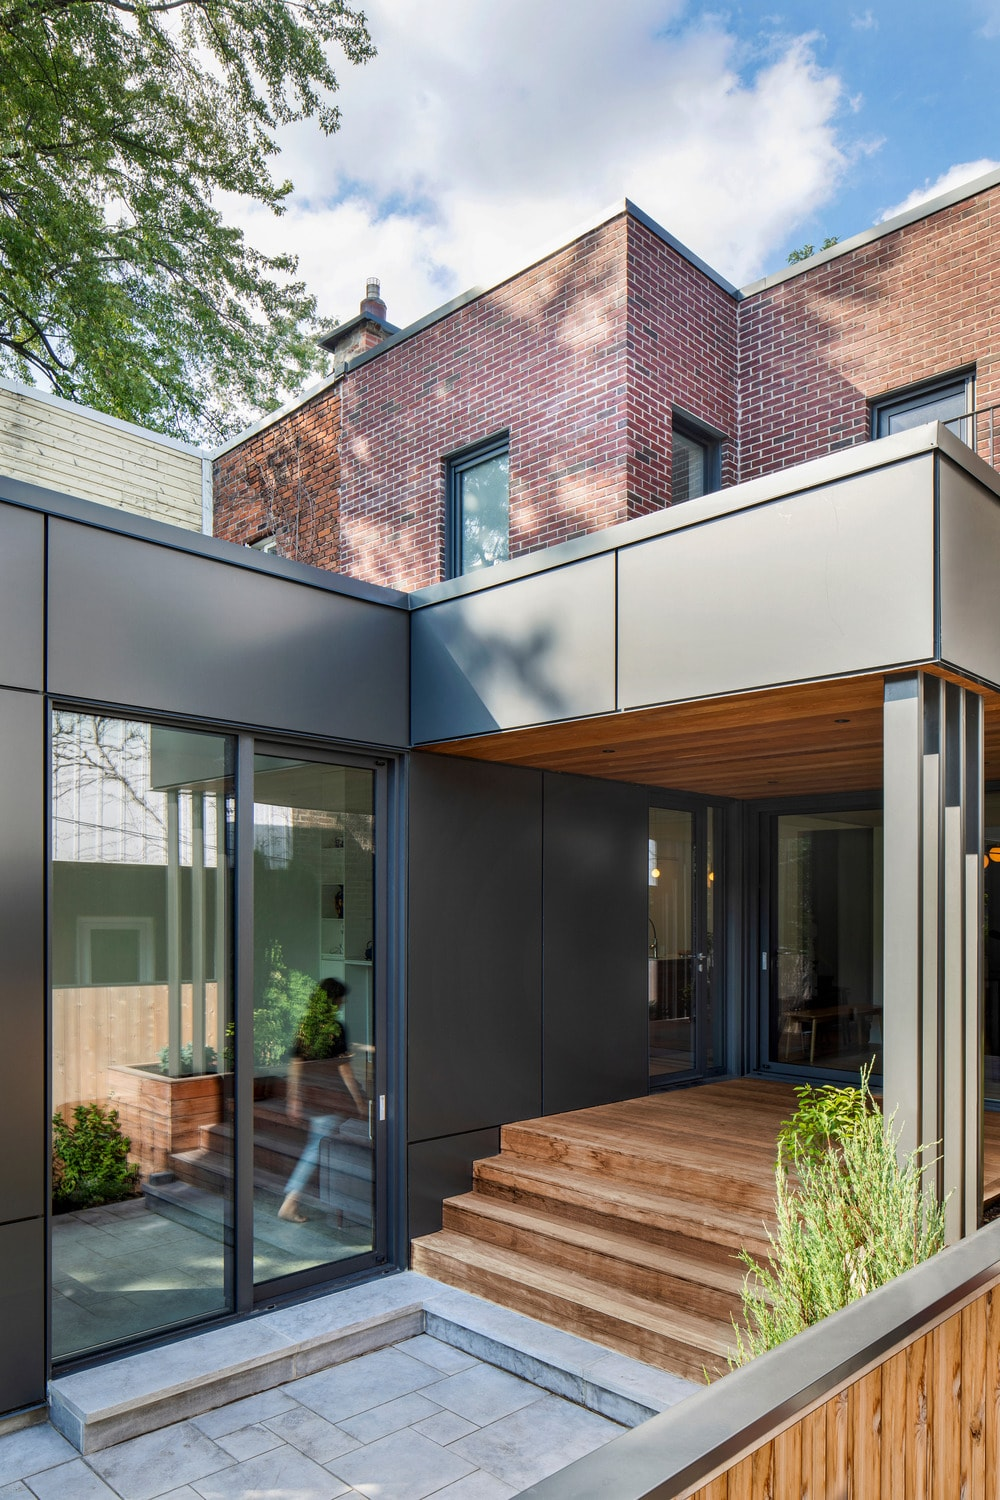 This other look of the main entrance shows that the glass door on the side is surrounded by dark gray wall panels.